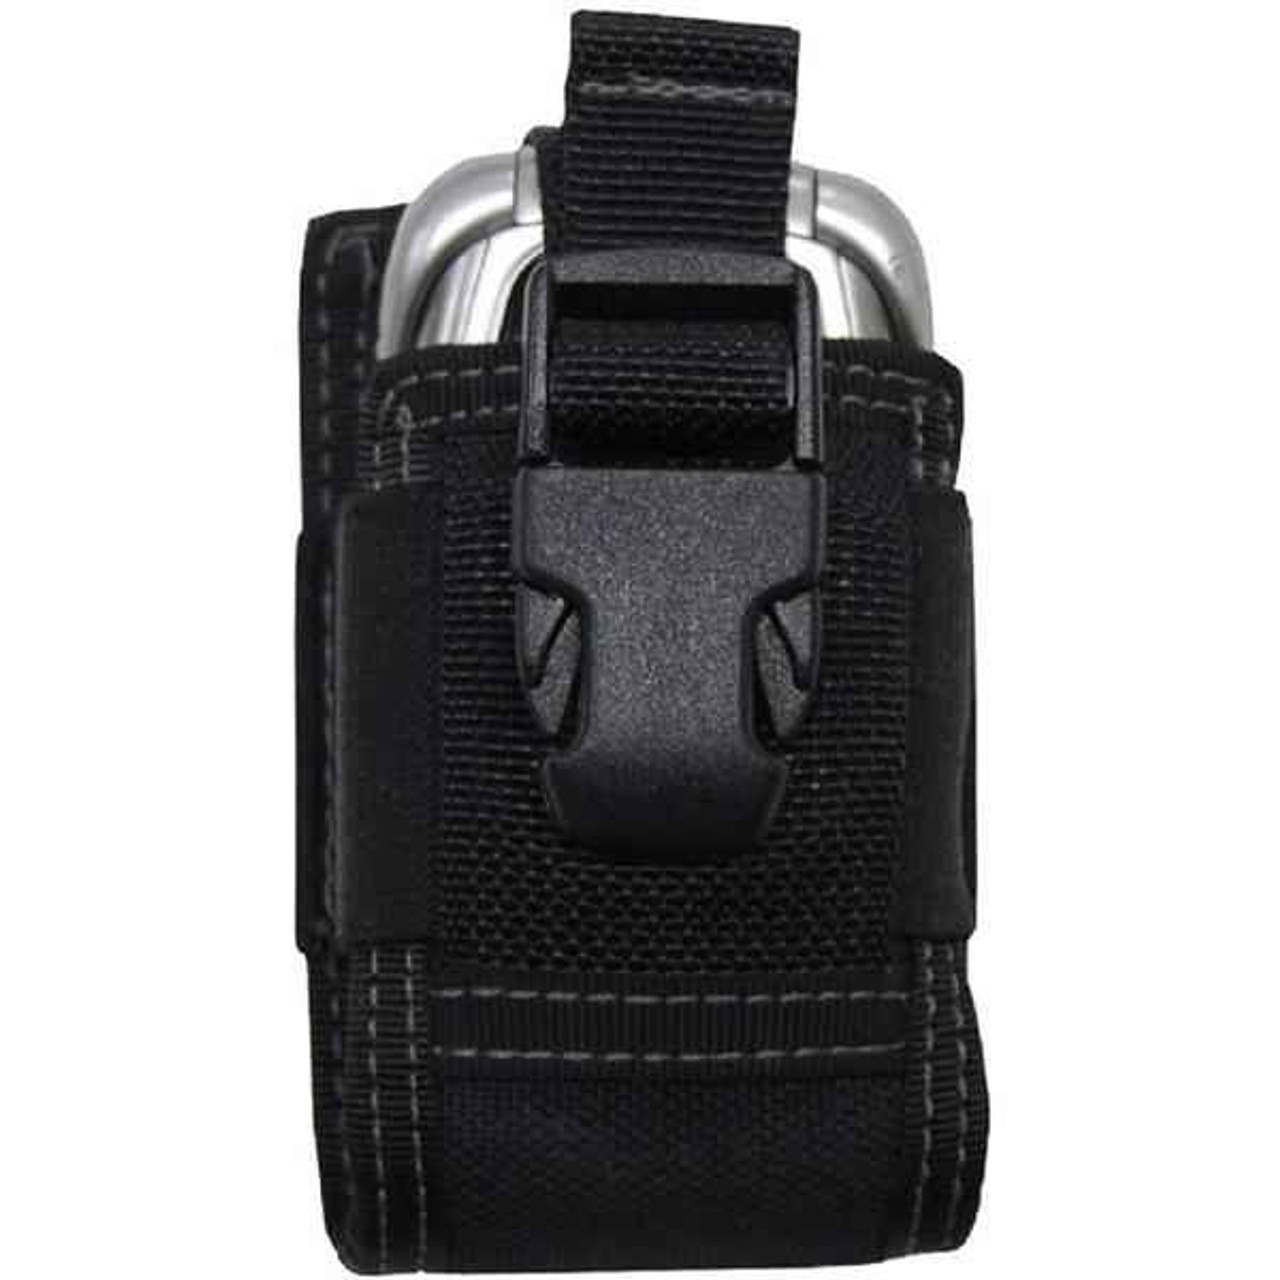 Maxpedition 3.5 in. Clip on Phone Holster| Color| Black